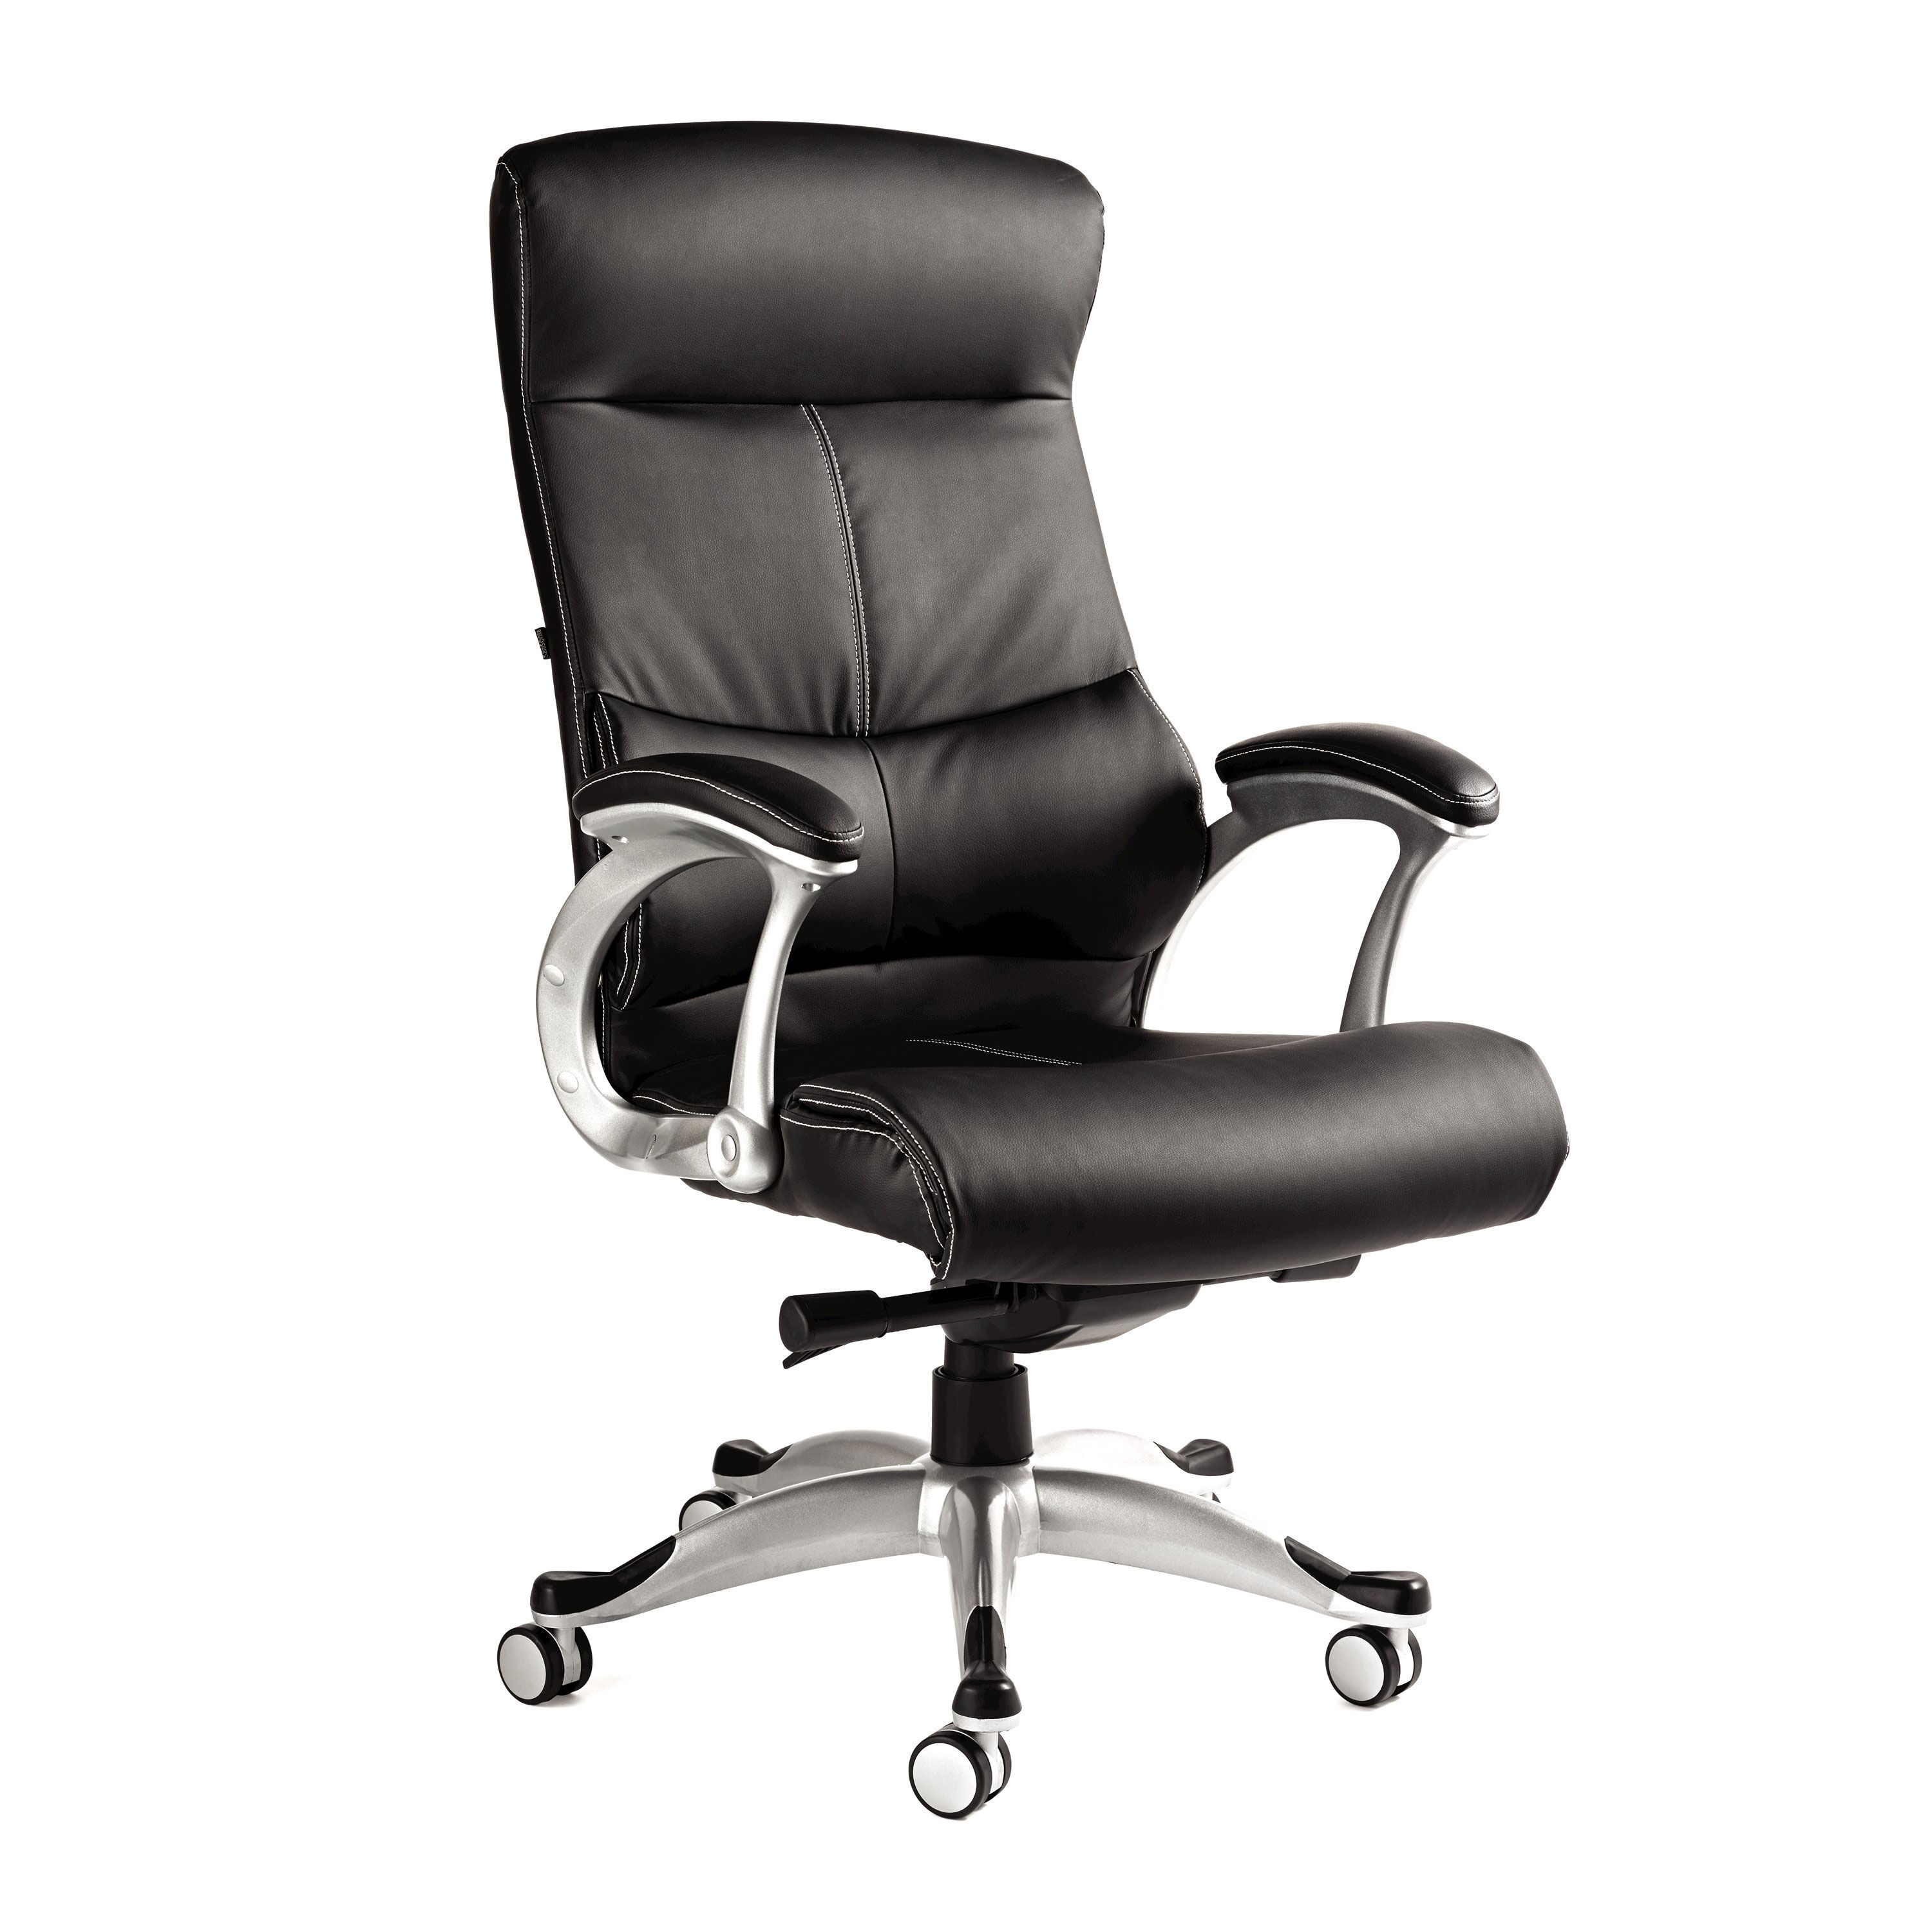 Hover Round Chairs Samsonite Singapore Premium Bonded Leather Chair